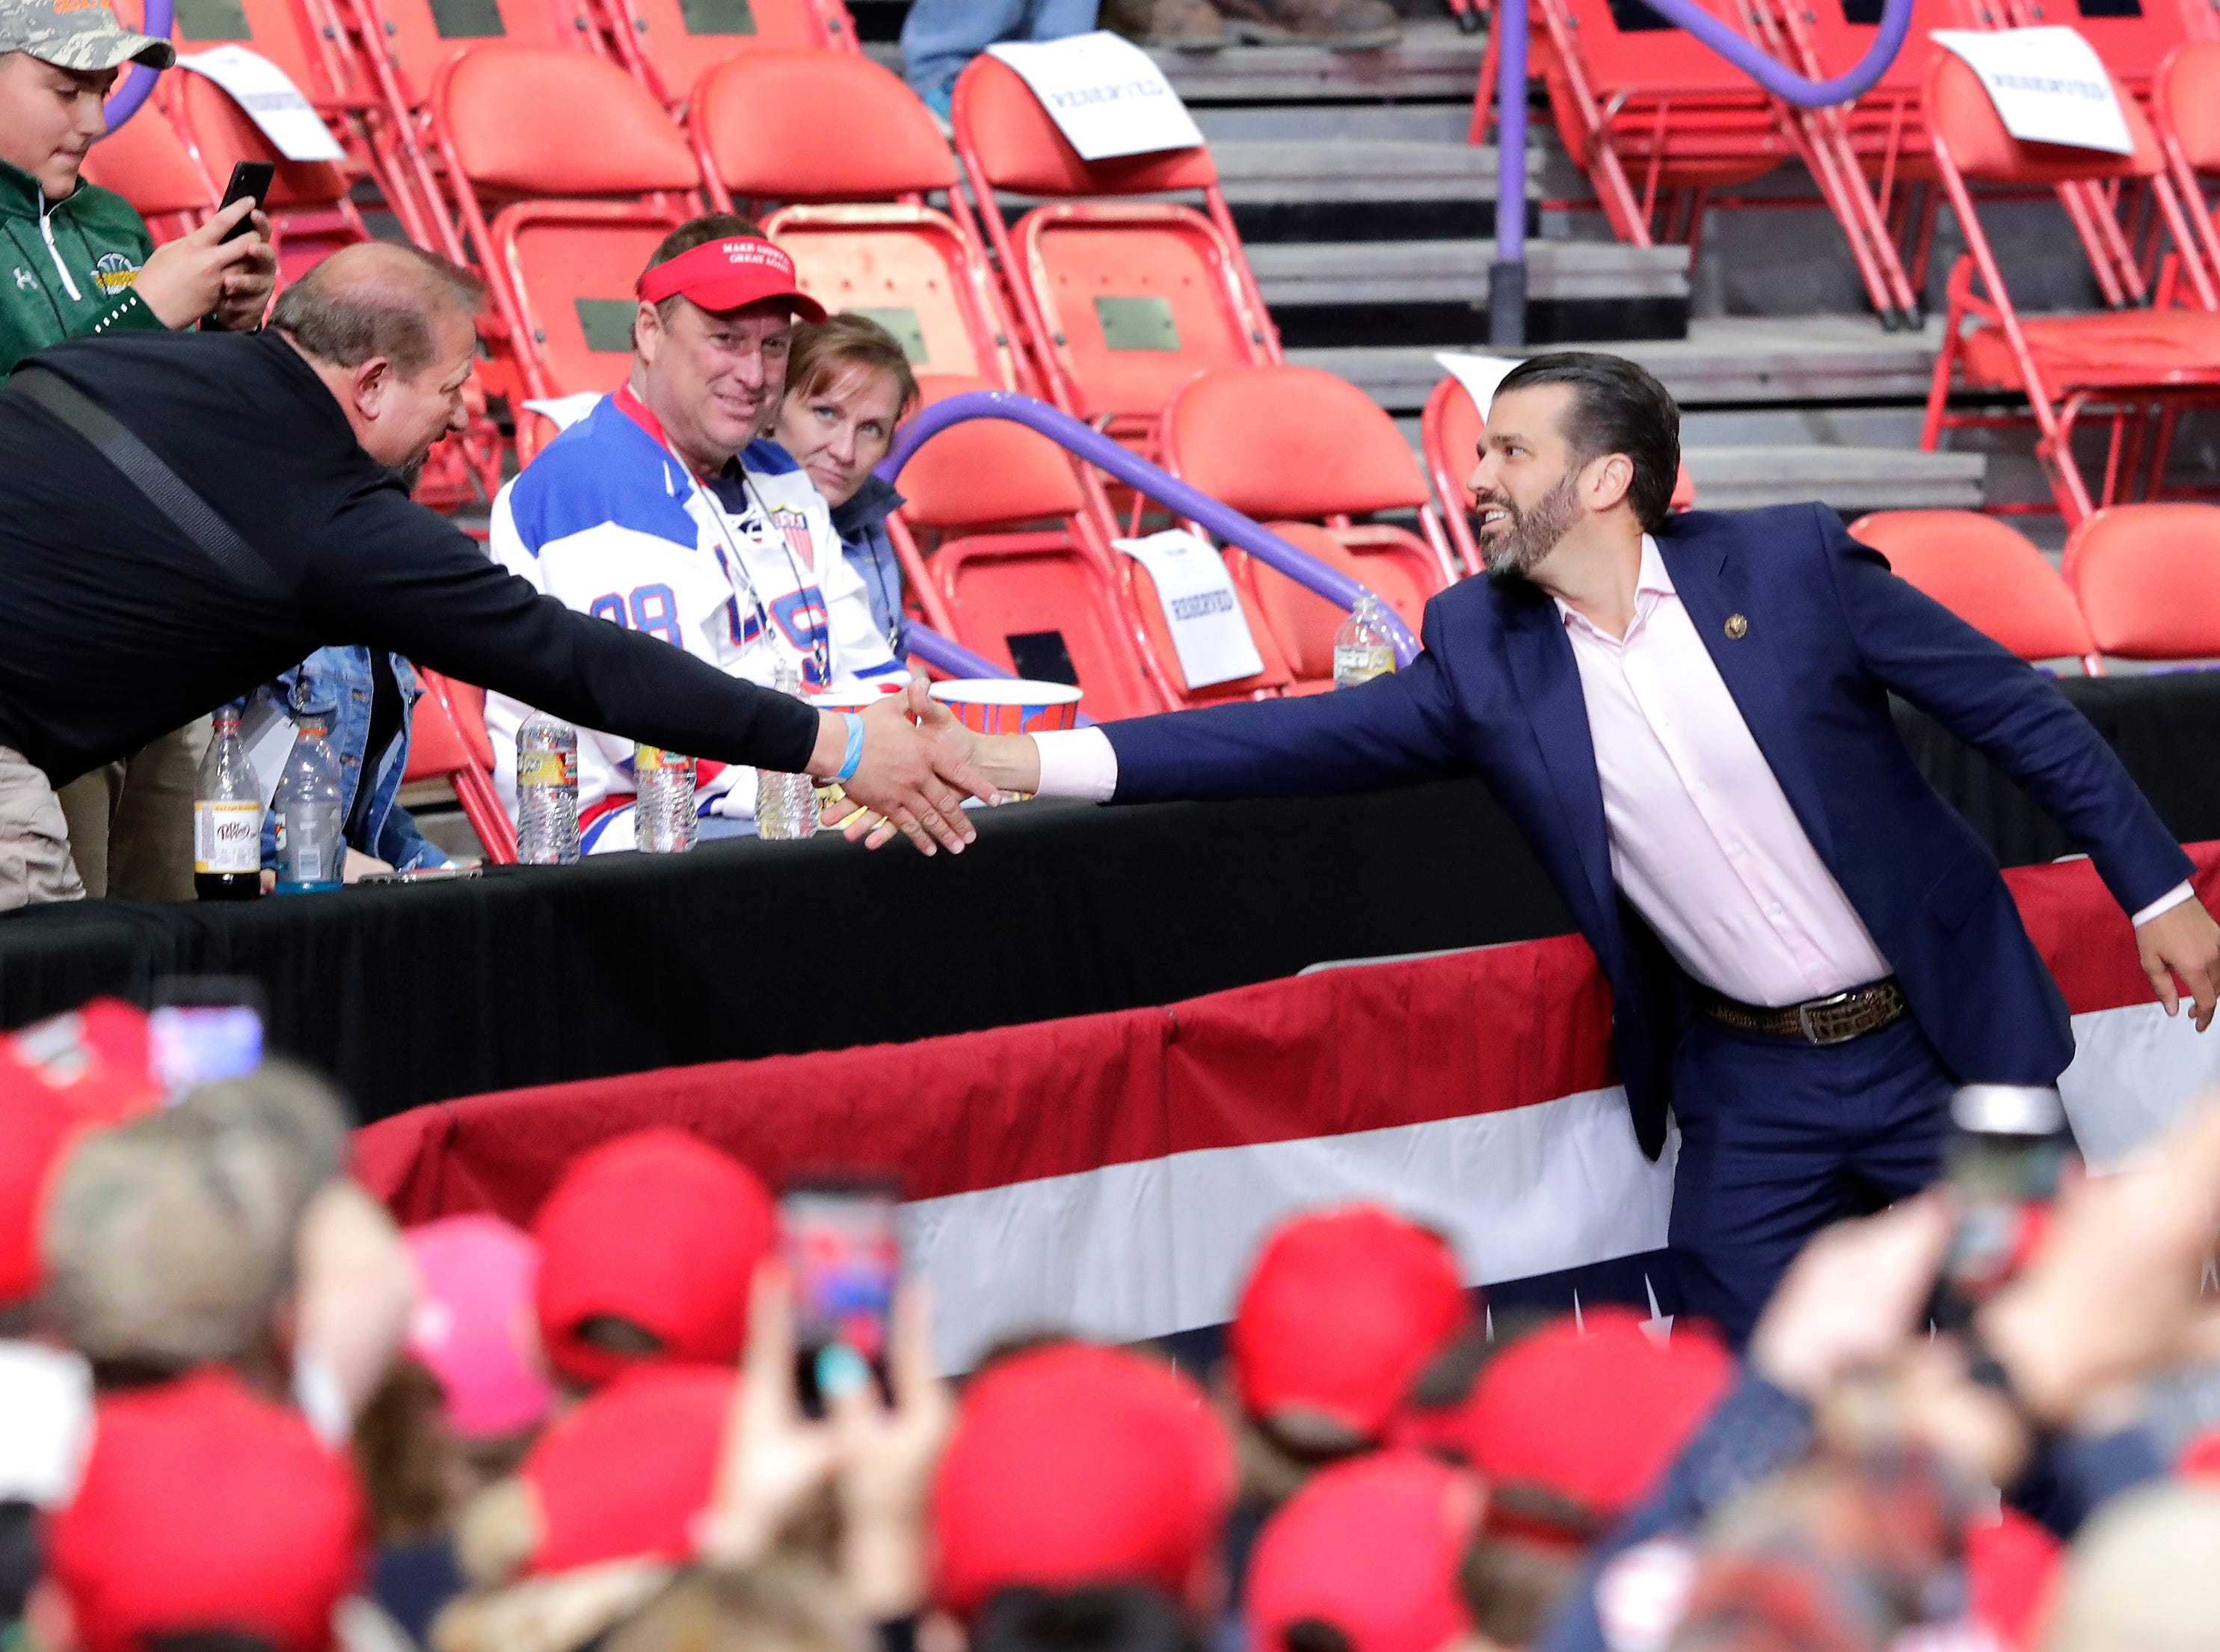 Donald Trump Jr. greets supporters before President Donald J. Trump's Make America Great Again Rally on Saturday, April 27, 2019, at the Resch Center in Green Bay, Wis.